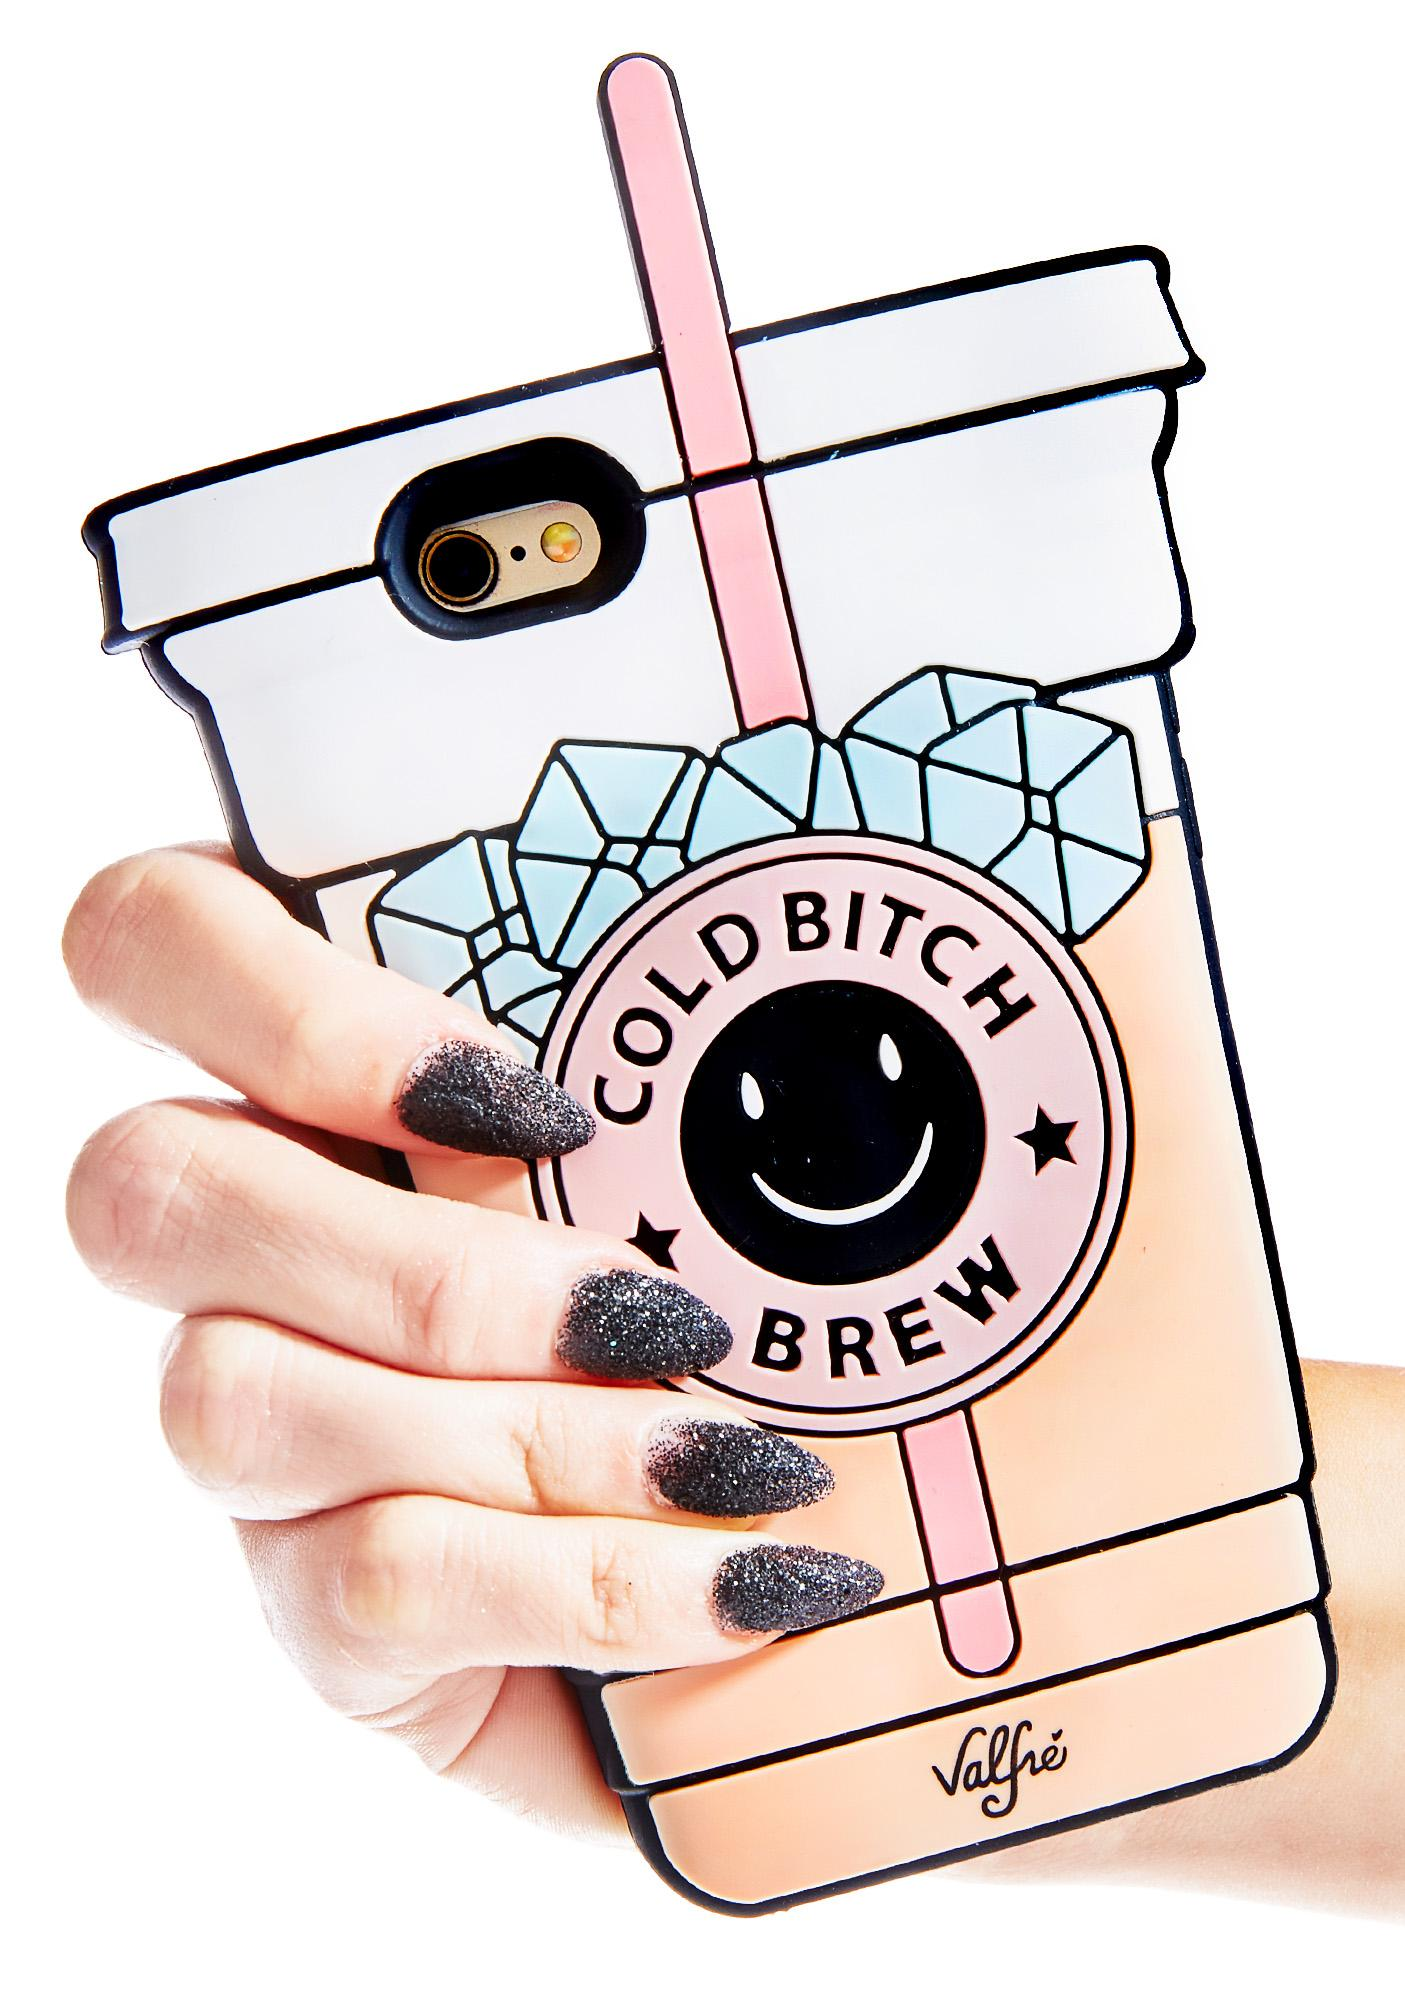 Valfré Cold Bitch Brew iPhone 6/6+ Case